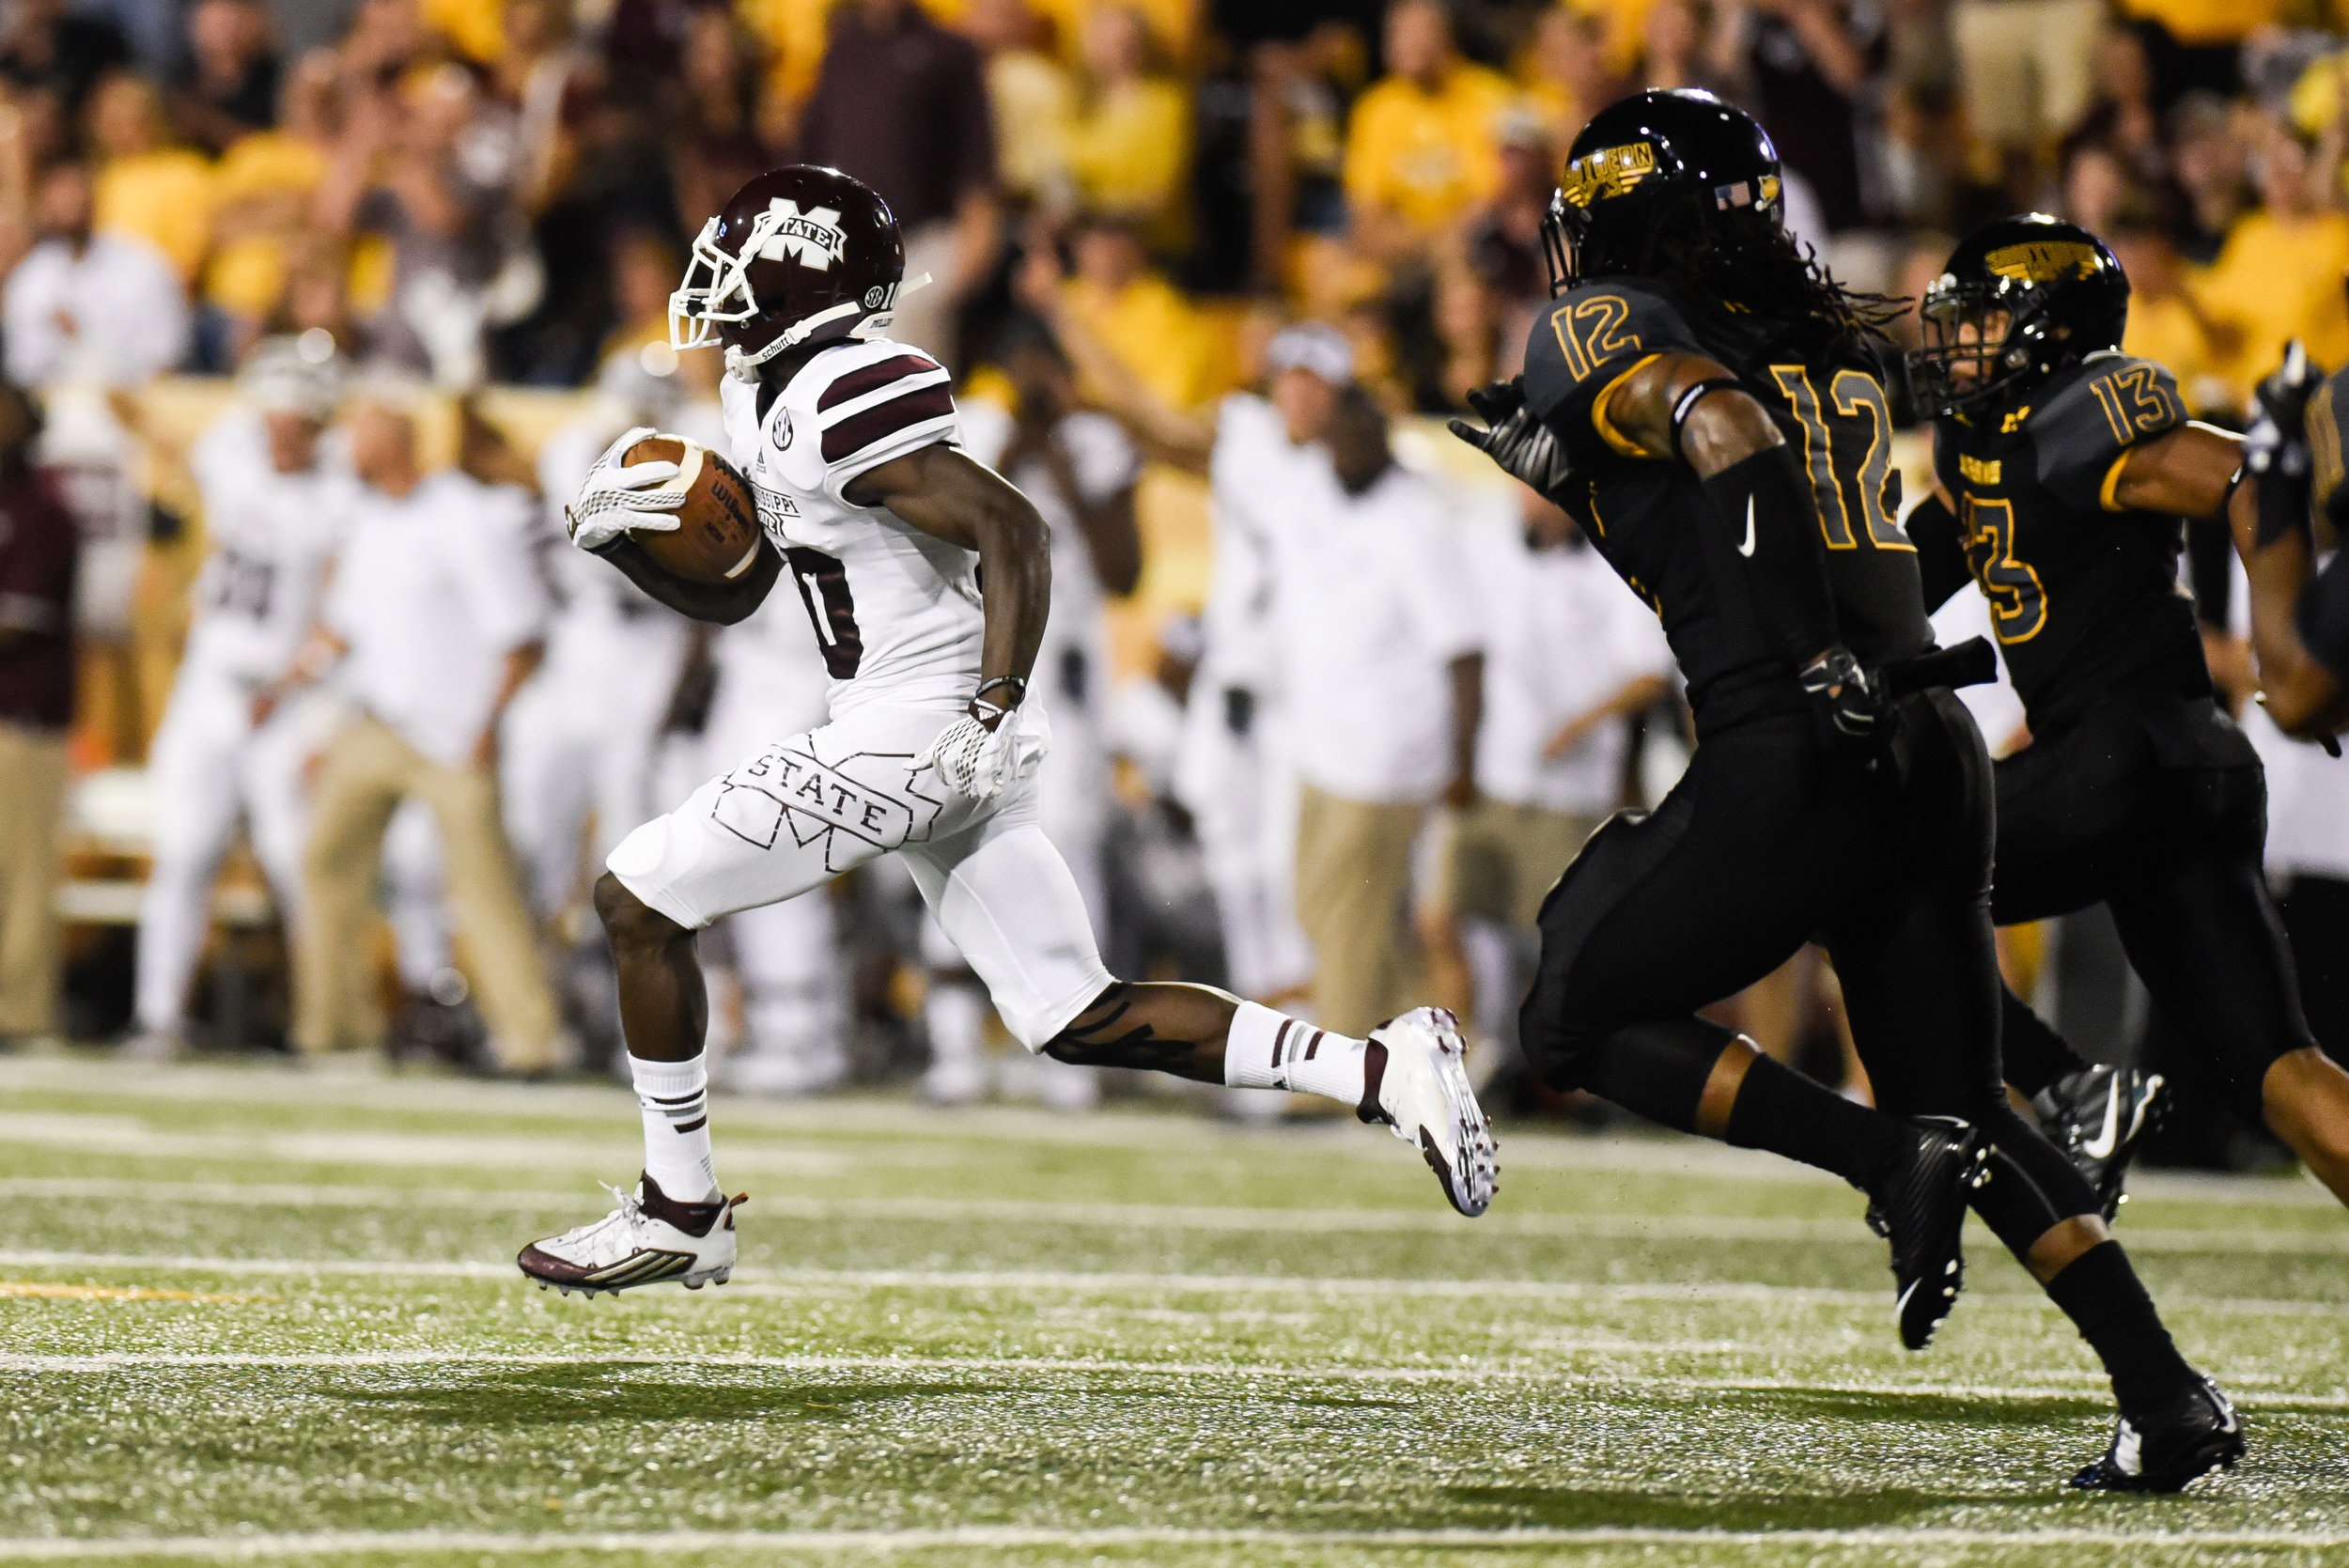 Mississippi State's Brandon Holloway (10) breaks away from Southern Miss defenders during the game at the University of Southern Mississippi Saturday, Sept. 9, 2015. The Bulldogs defeated the Golden Eagles 34-16.